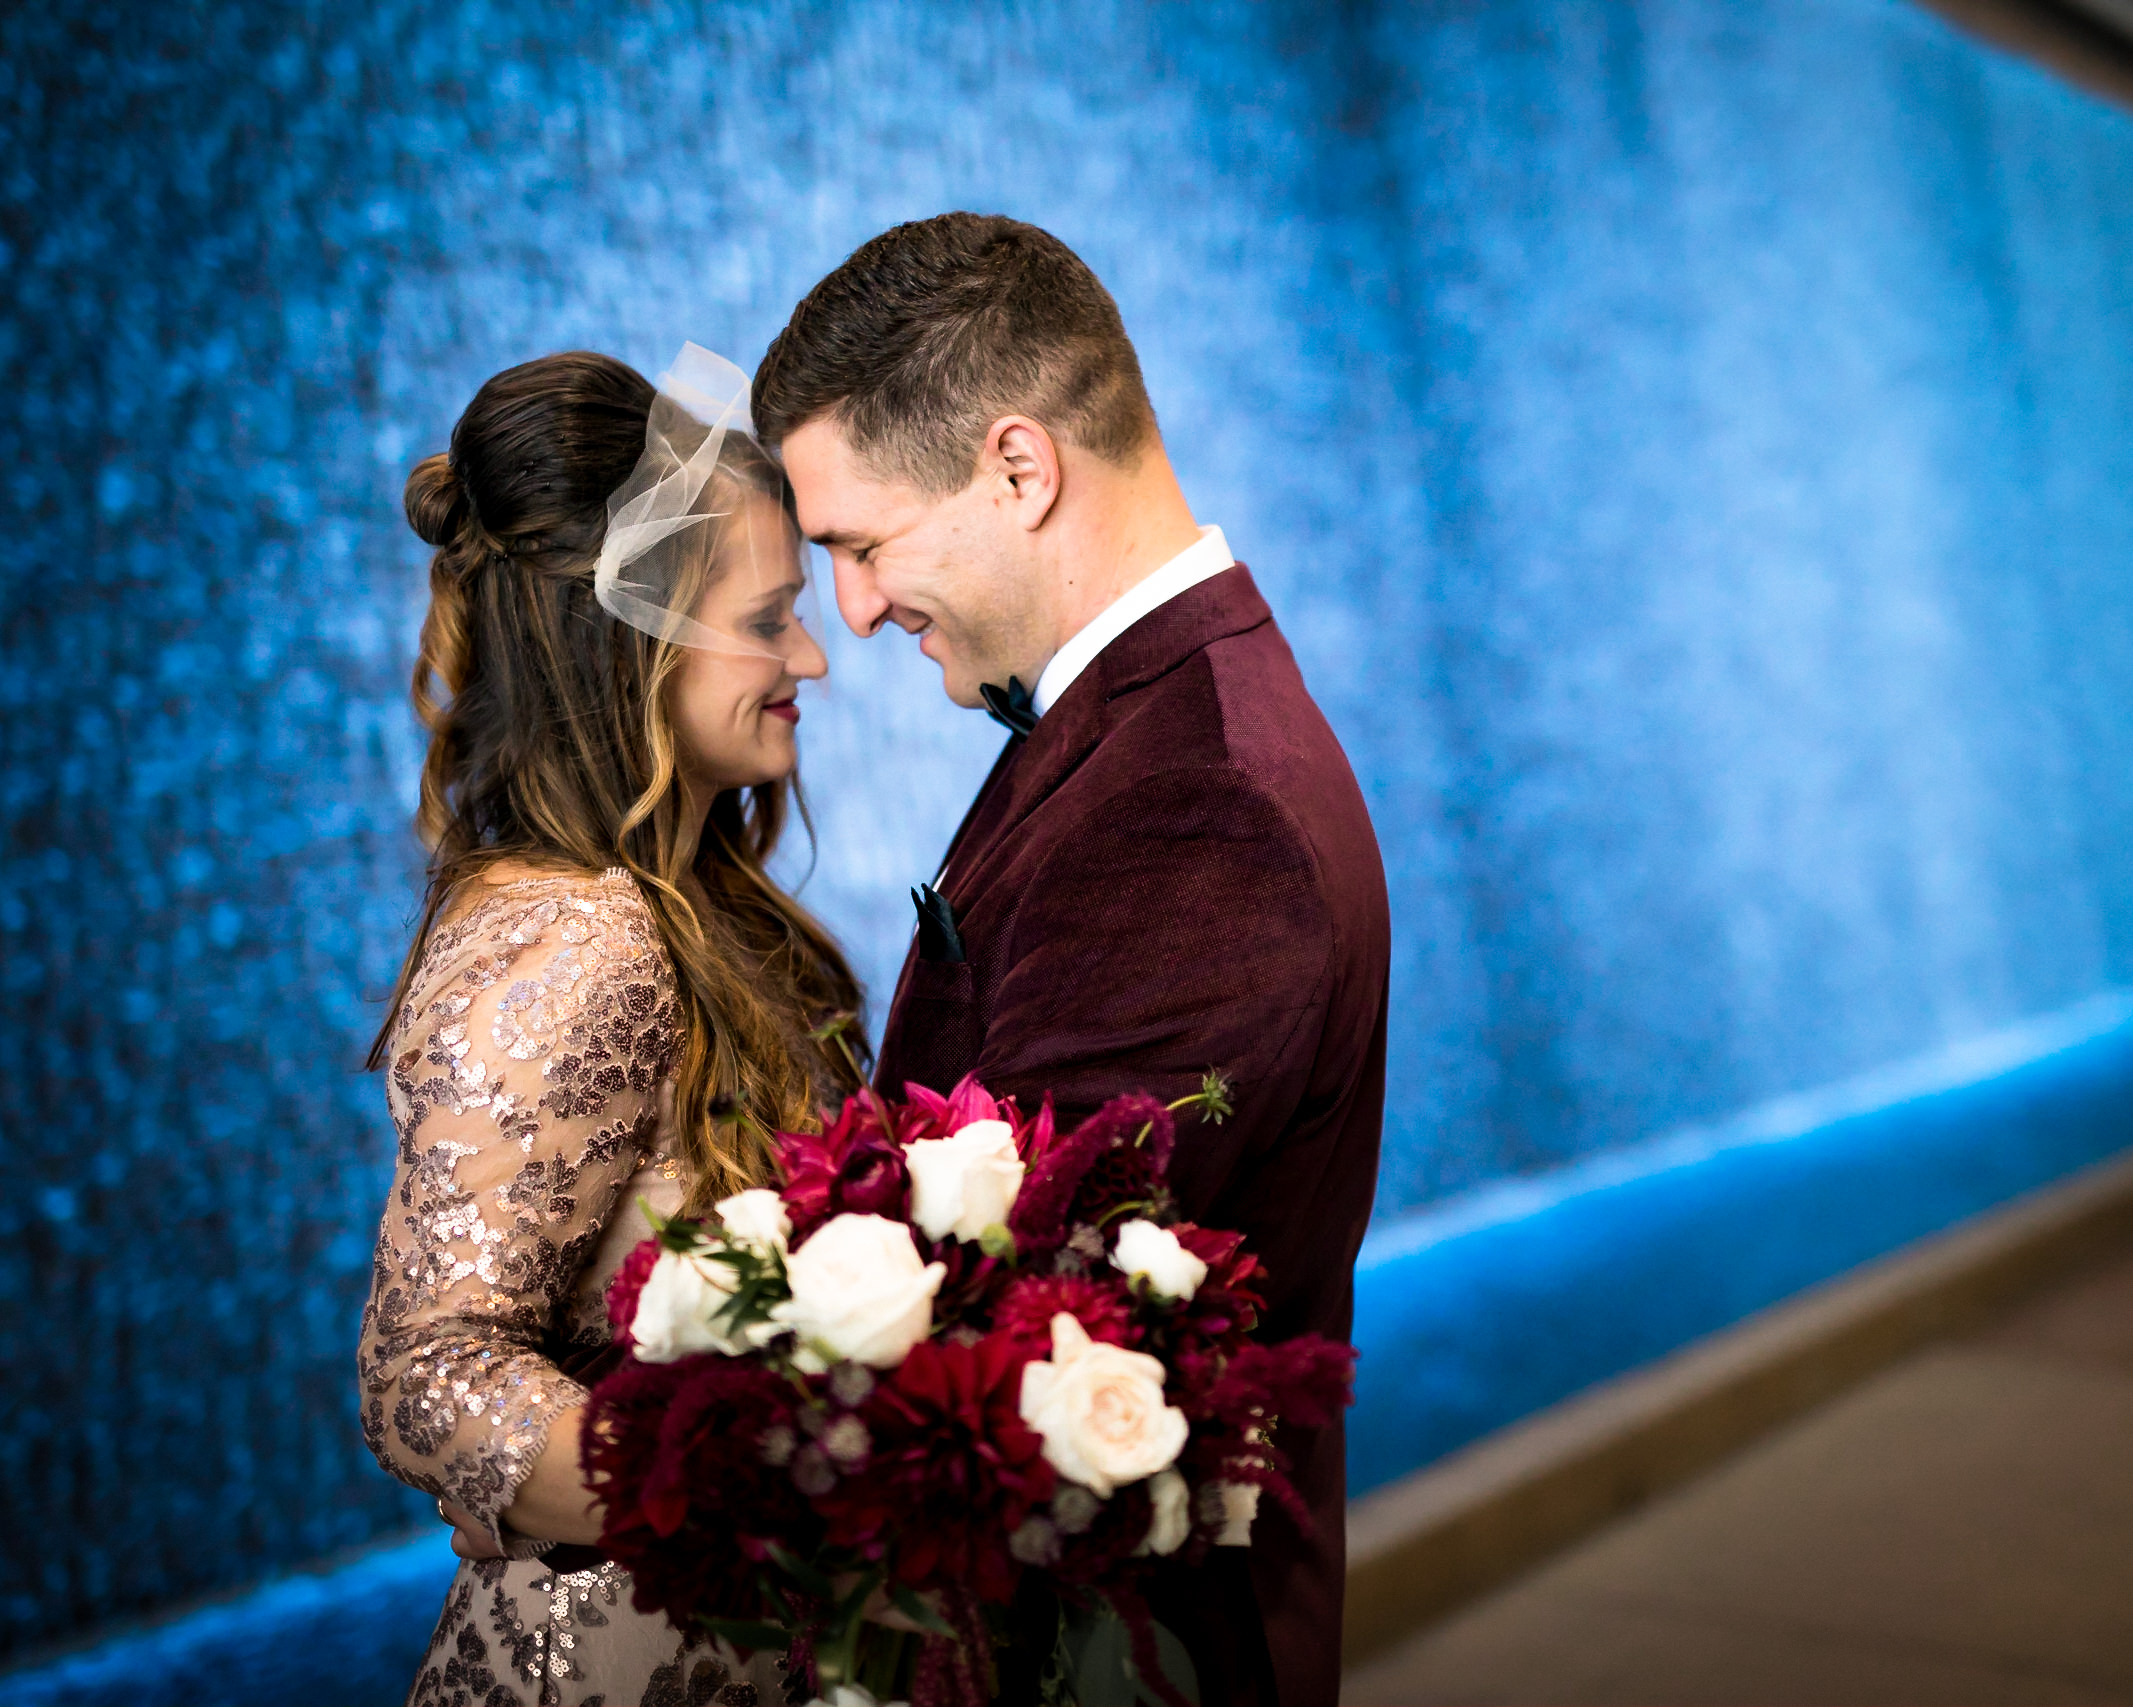 Convention Center Wedding Engagement Picture Locations-2.jpg